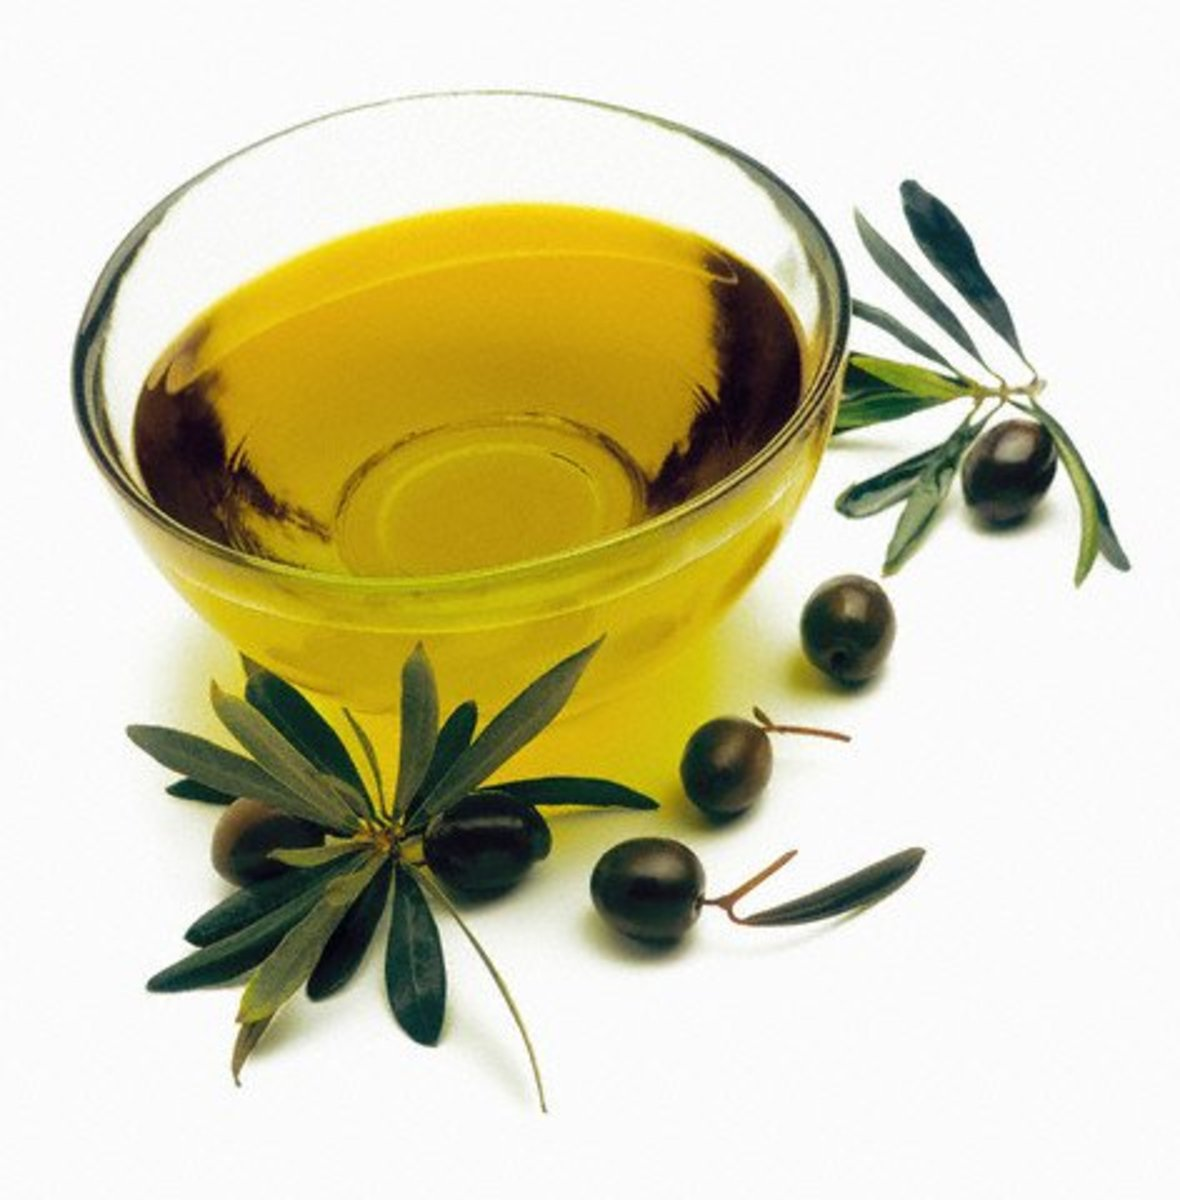 Olive oil doesn't clog pores and is packed with healthy vitamins.